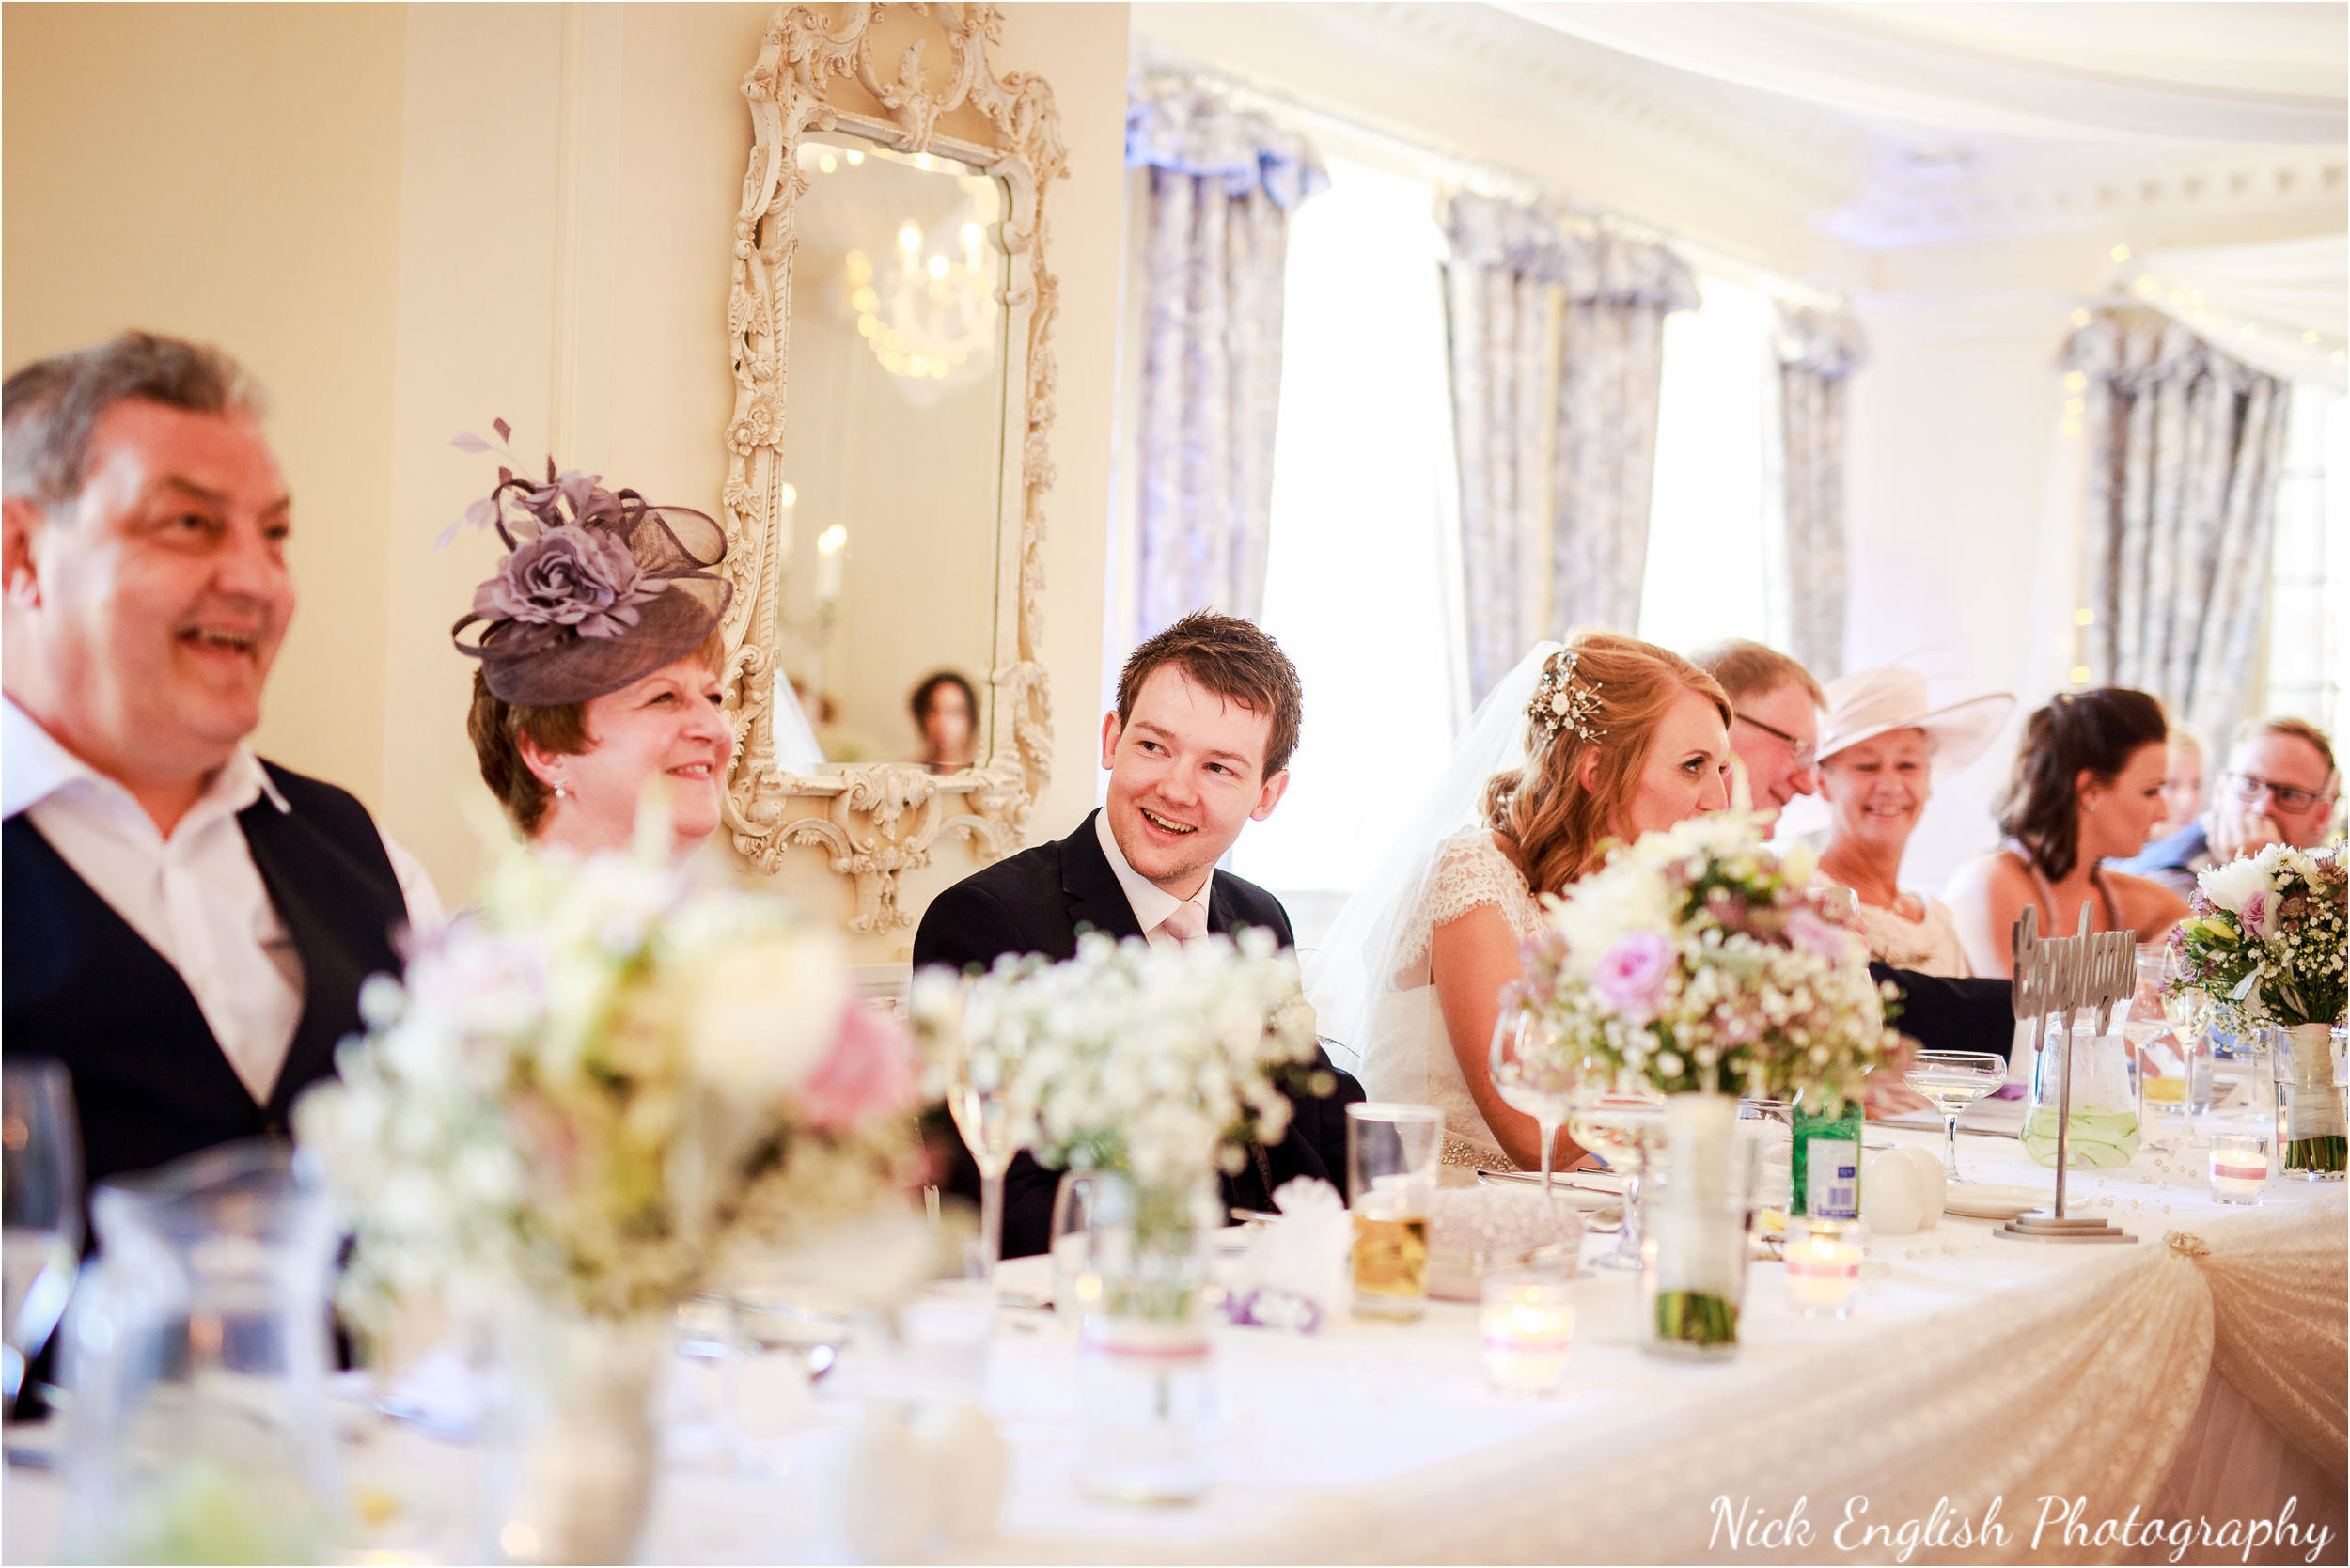 Alison James Wedding Photographs at Eaves Hall West Bradford 180jpg.jpeg